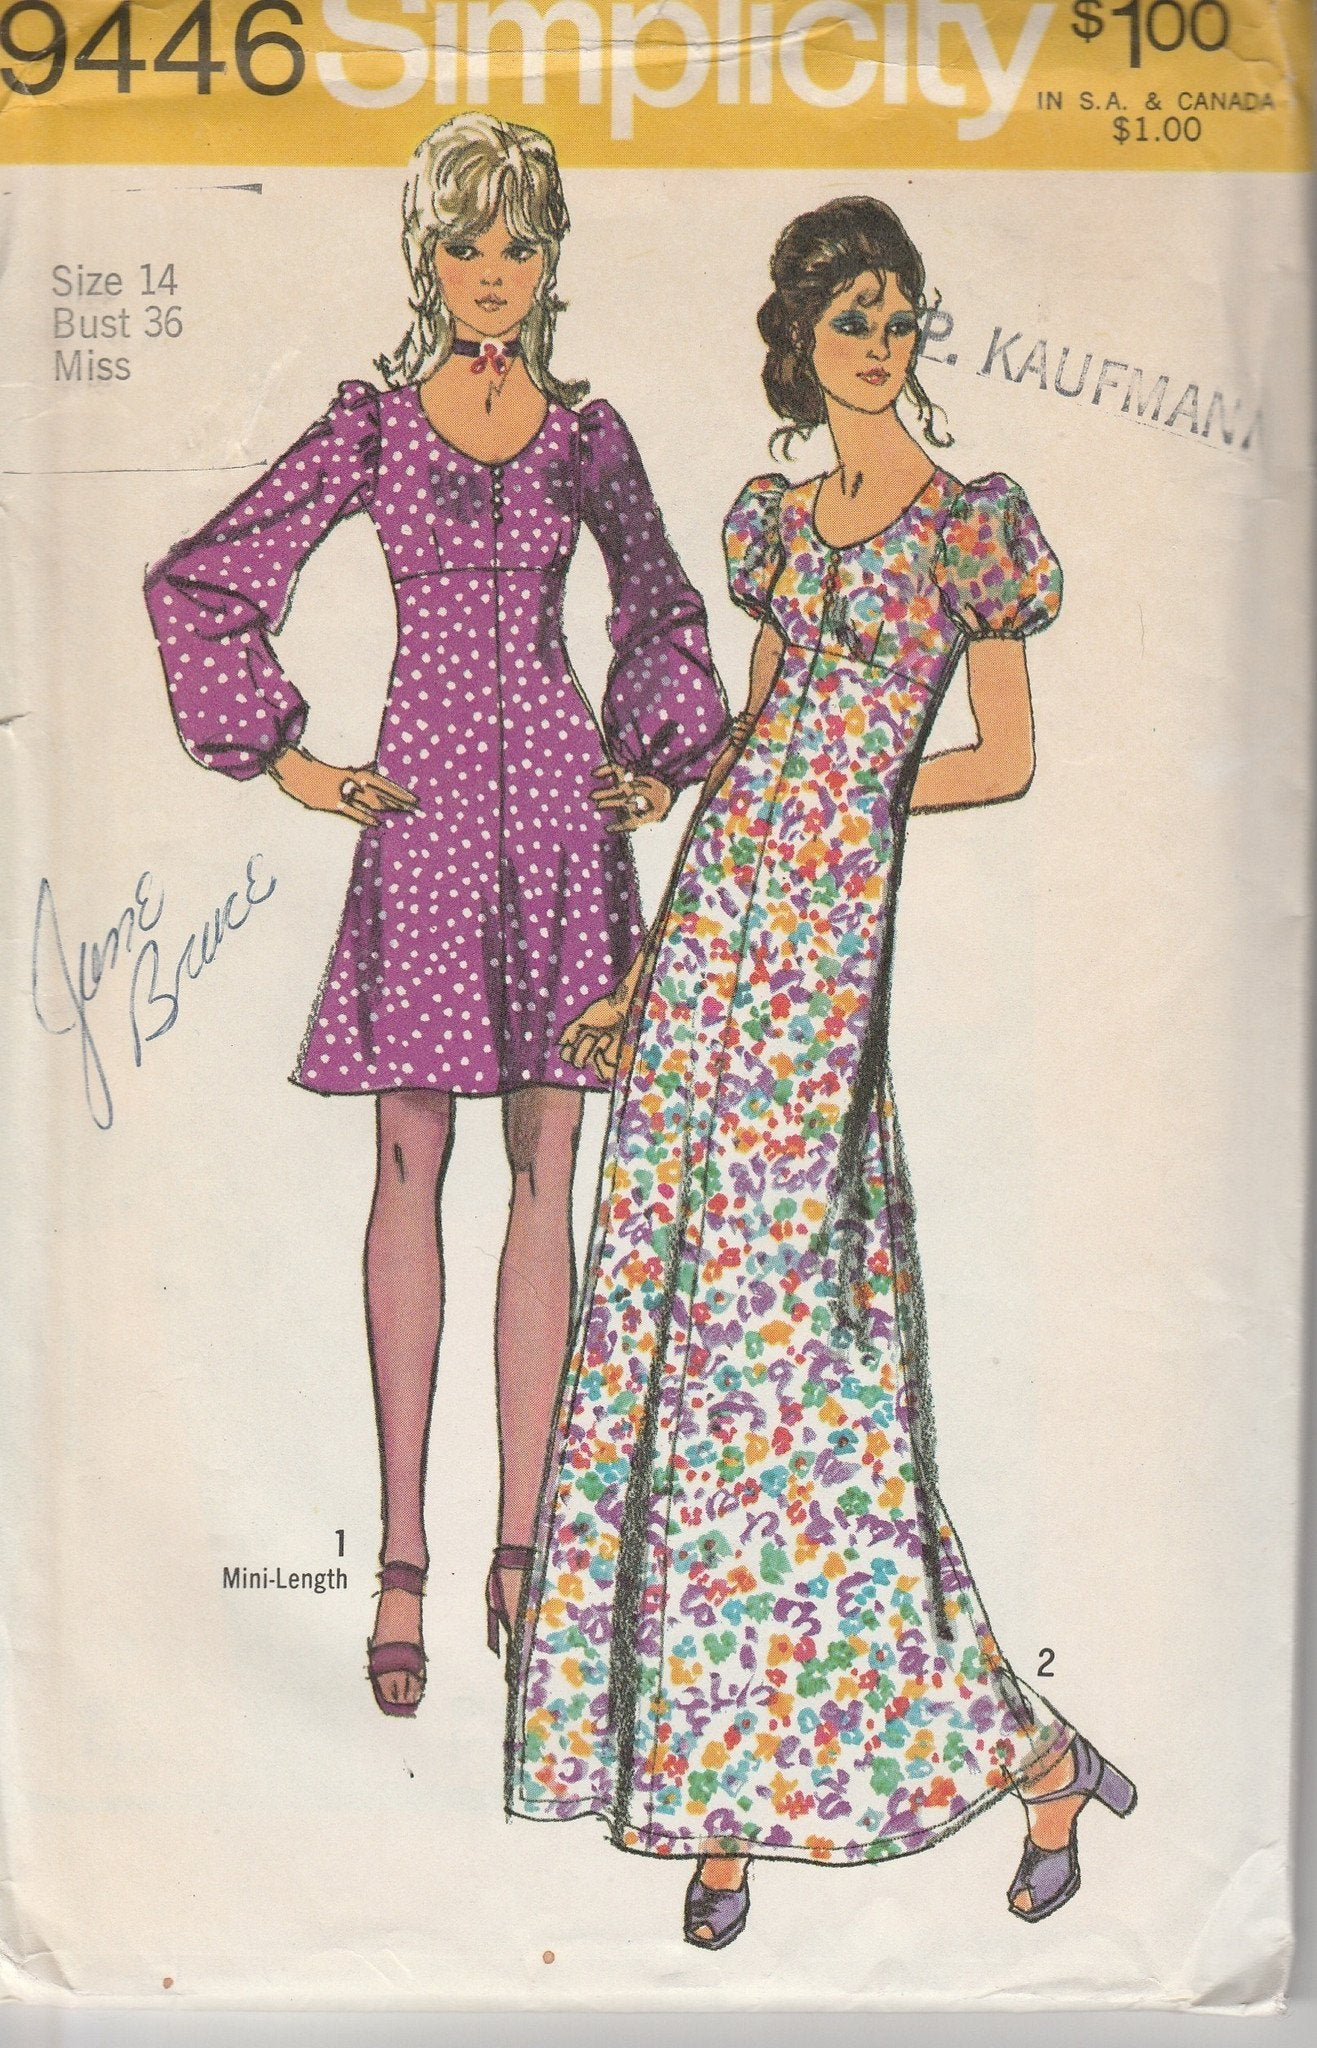 Simplicity 9446 Vintage 1970's Sewing Pattern Ladies Empire Waist Mini Dress Above Knee Long - VintageStitching - Vintage Sewing Patterns